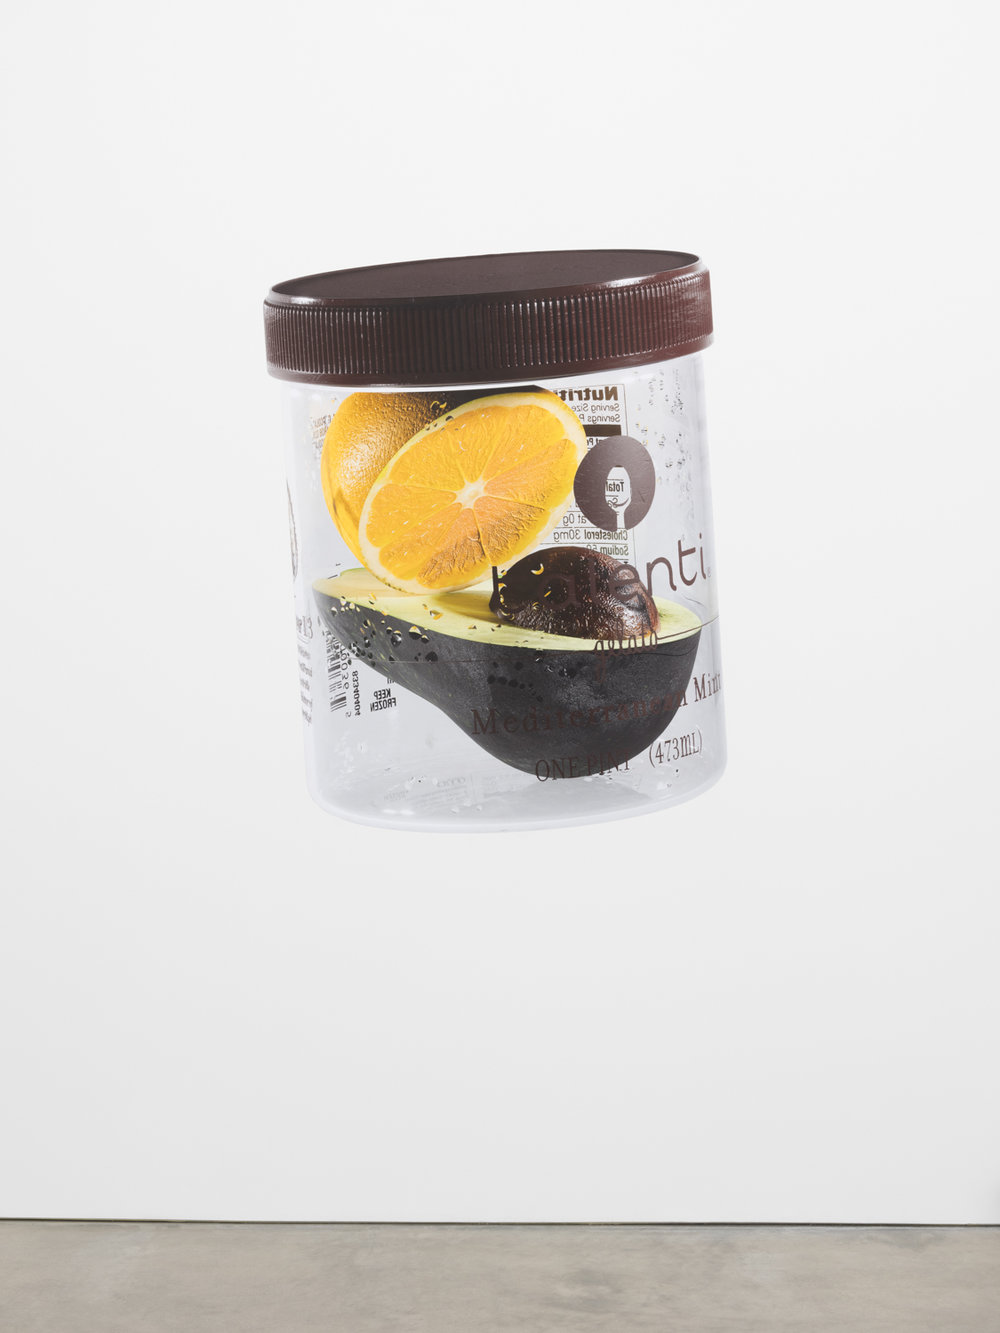 Asha Schechter  Talenti Container with Lemon and Avocado modeled and rendered by Orest Moskal  2017 Inkjet print on adhesive vinyl 54h x 43w in ASch003